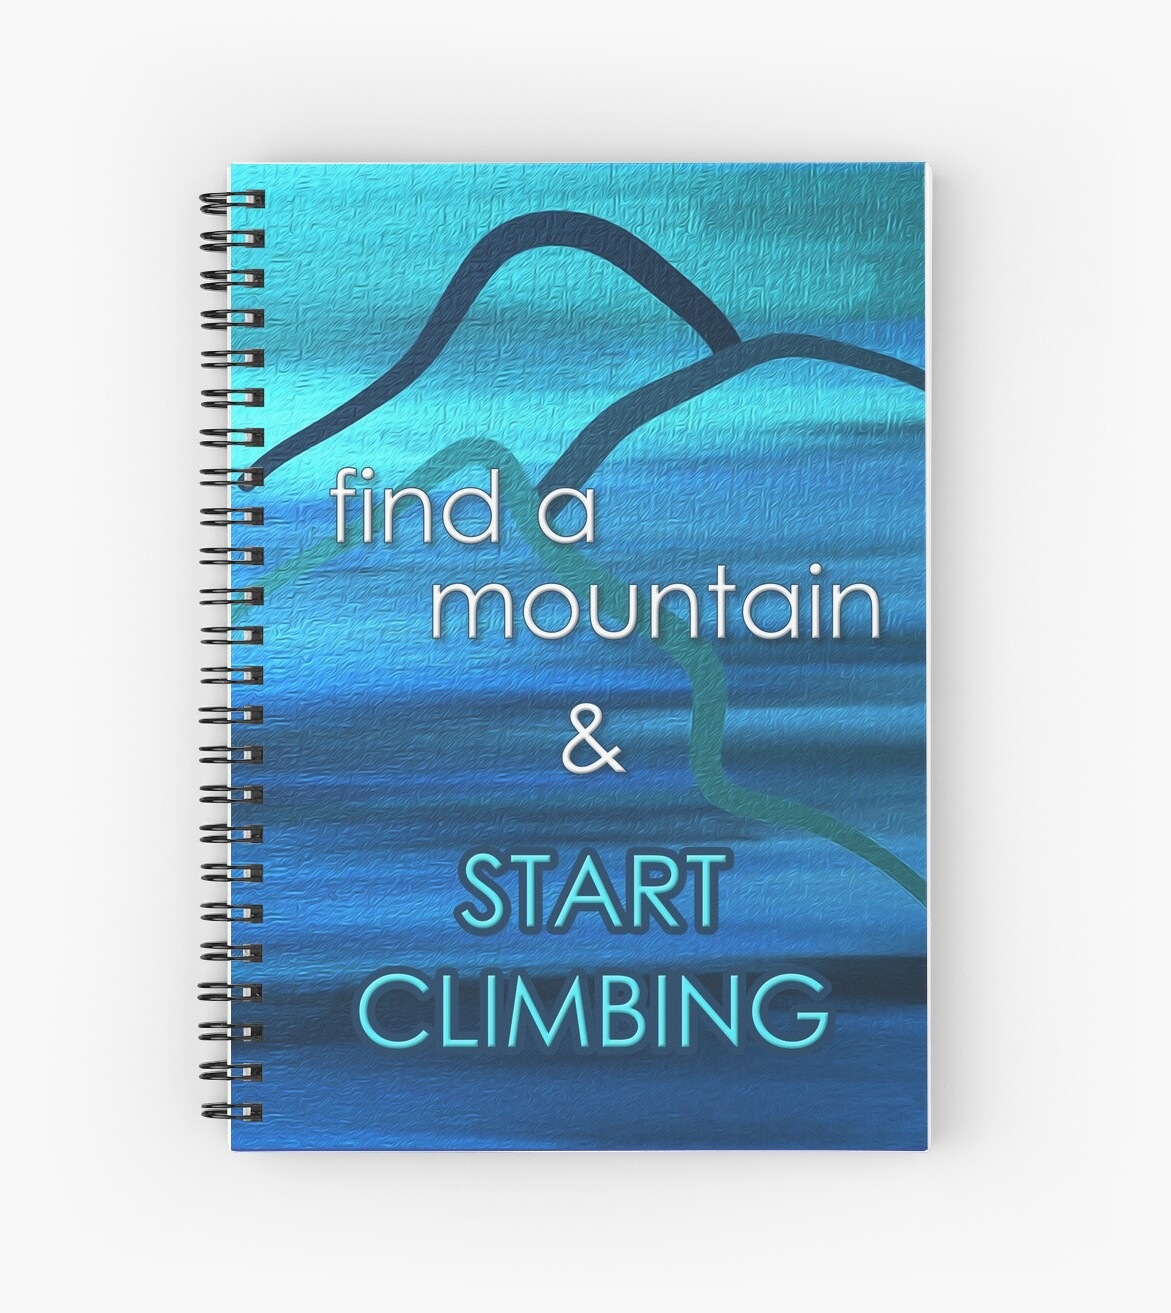 Find a Mountain & START CLIMBING by DPArtGallery